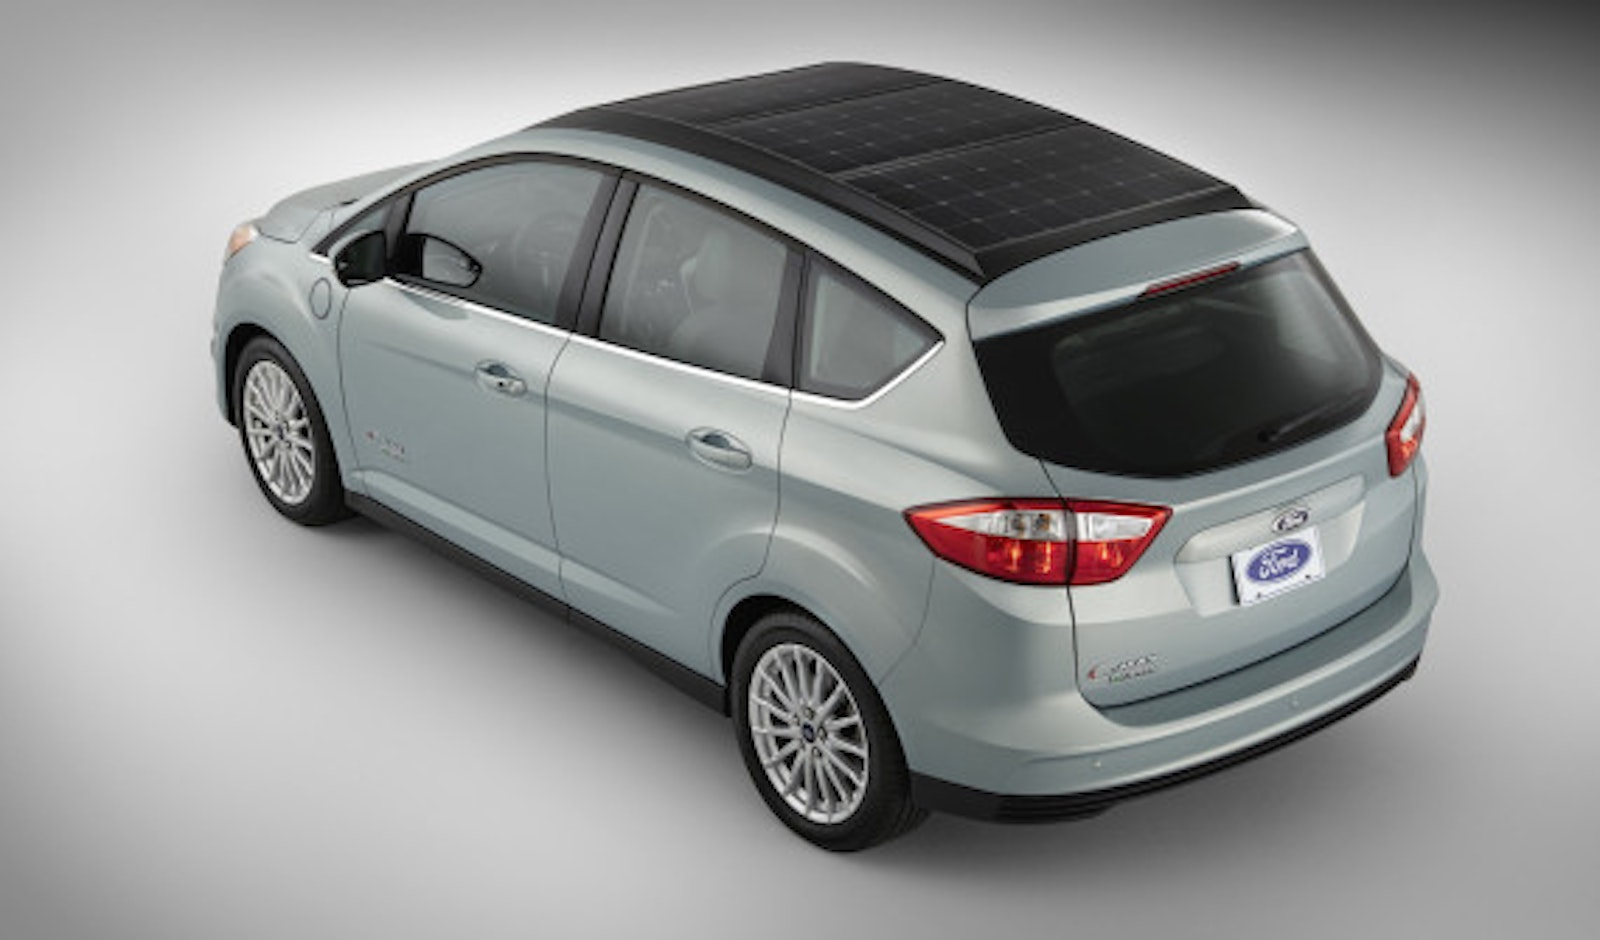 Ford Has Unveiled Plans For A Prototype Solar Ed Hybrid Car The C Max Energi Concept Panel Roof Supplied By Their Technology